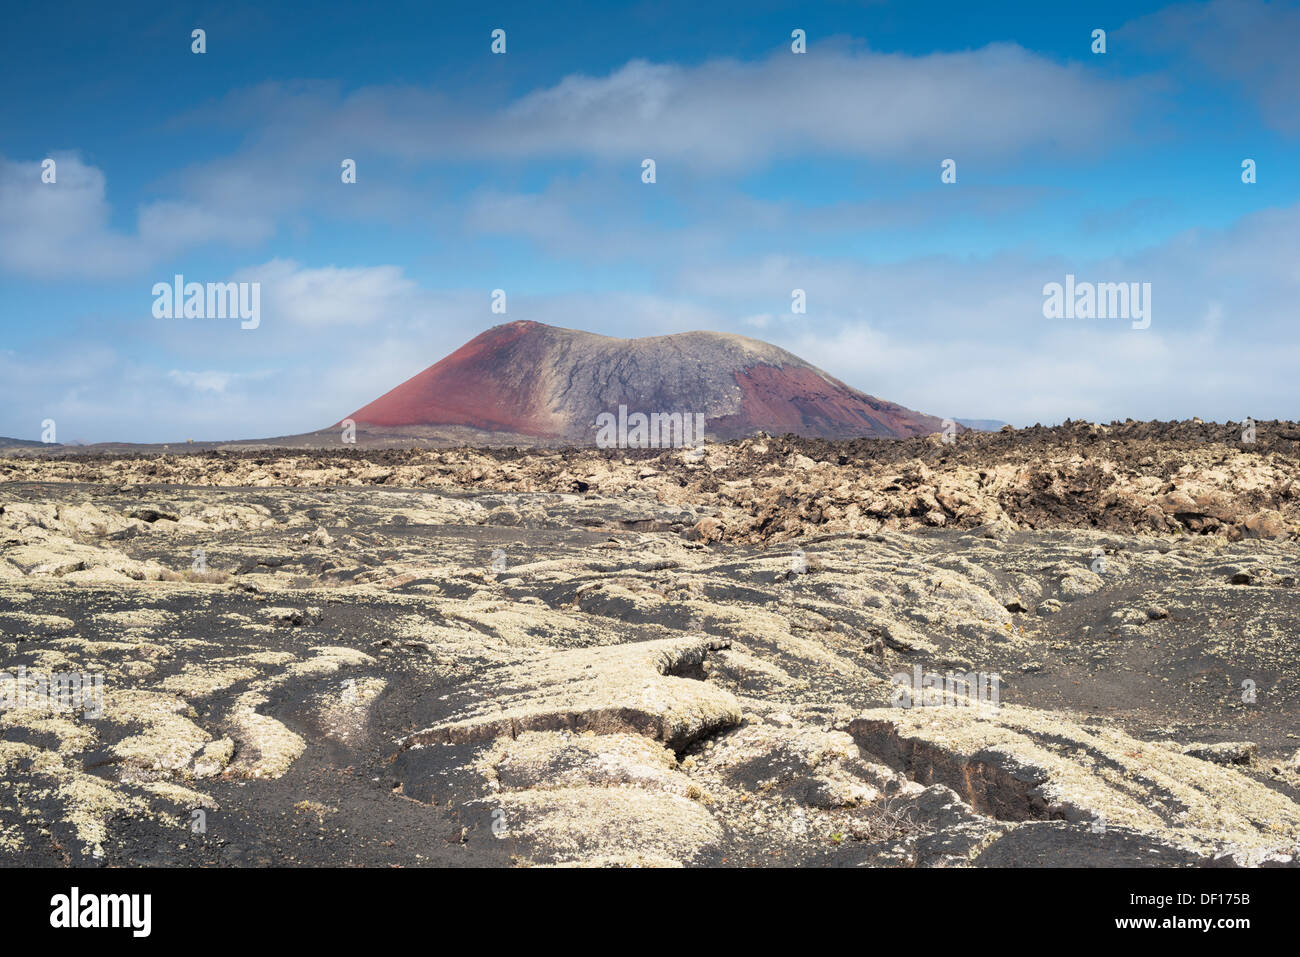 Pahoehoe or ropy lava in foreground, with aa lava middle and the volcanic cone of Montaña Colorada in the background - Stock Image